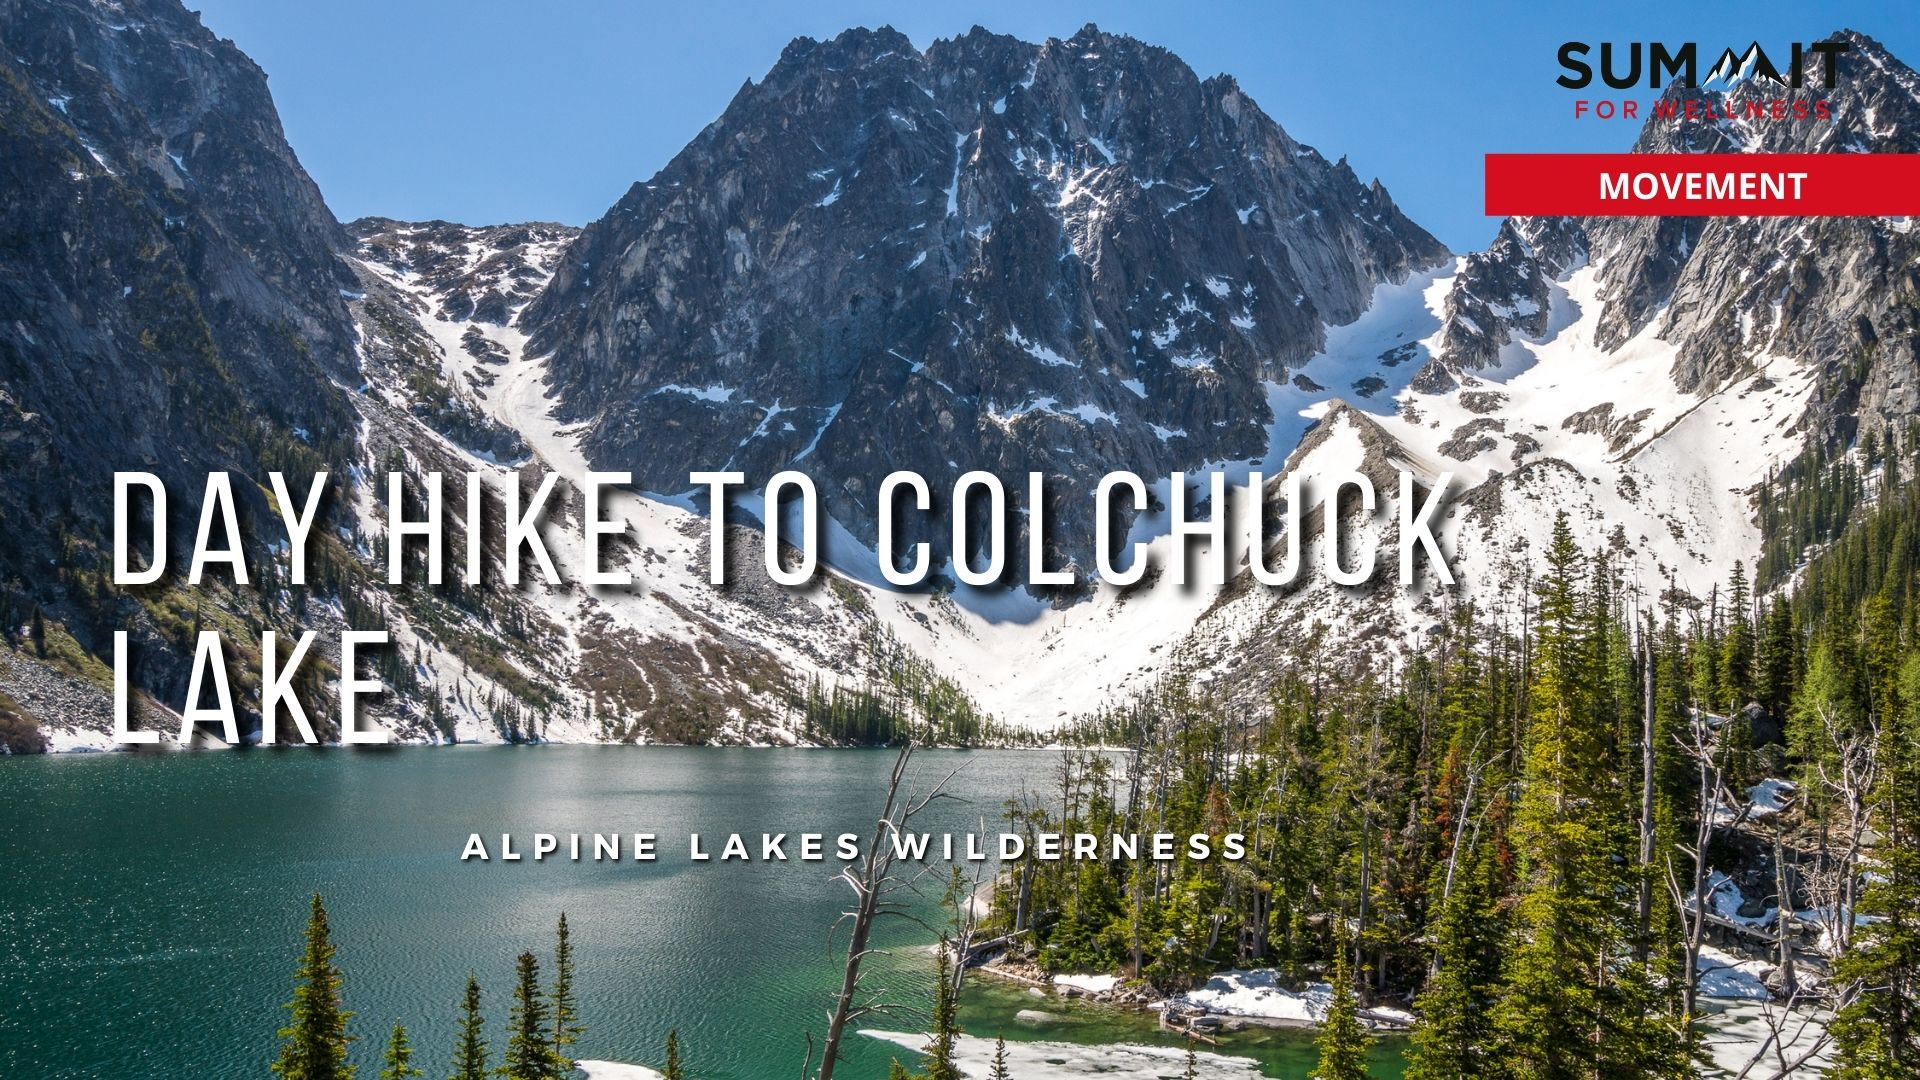 This 8 mile hike to Colchuck Lake is the gateway to the Enchantments